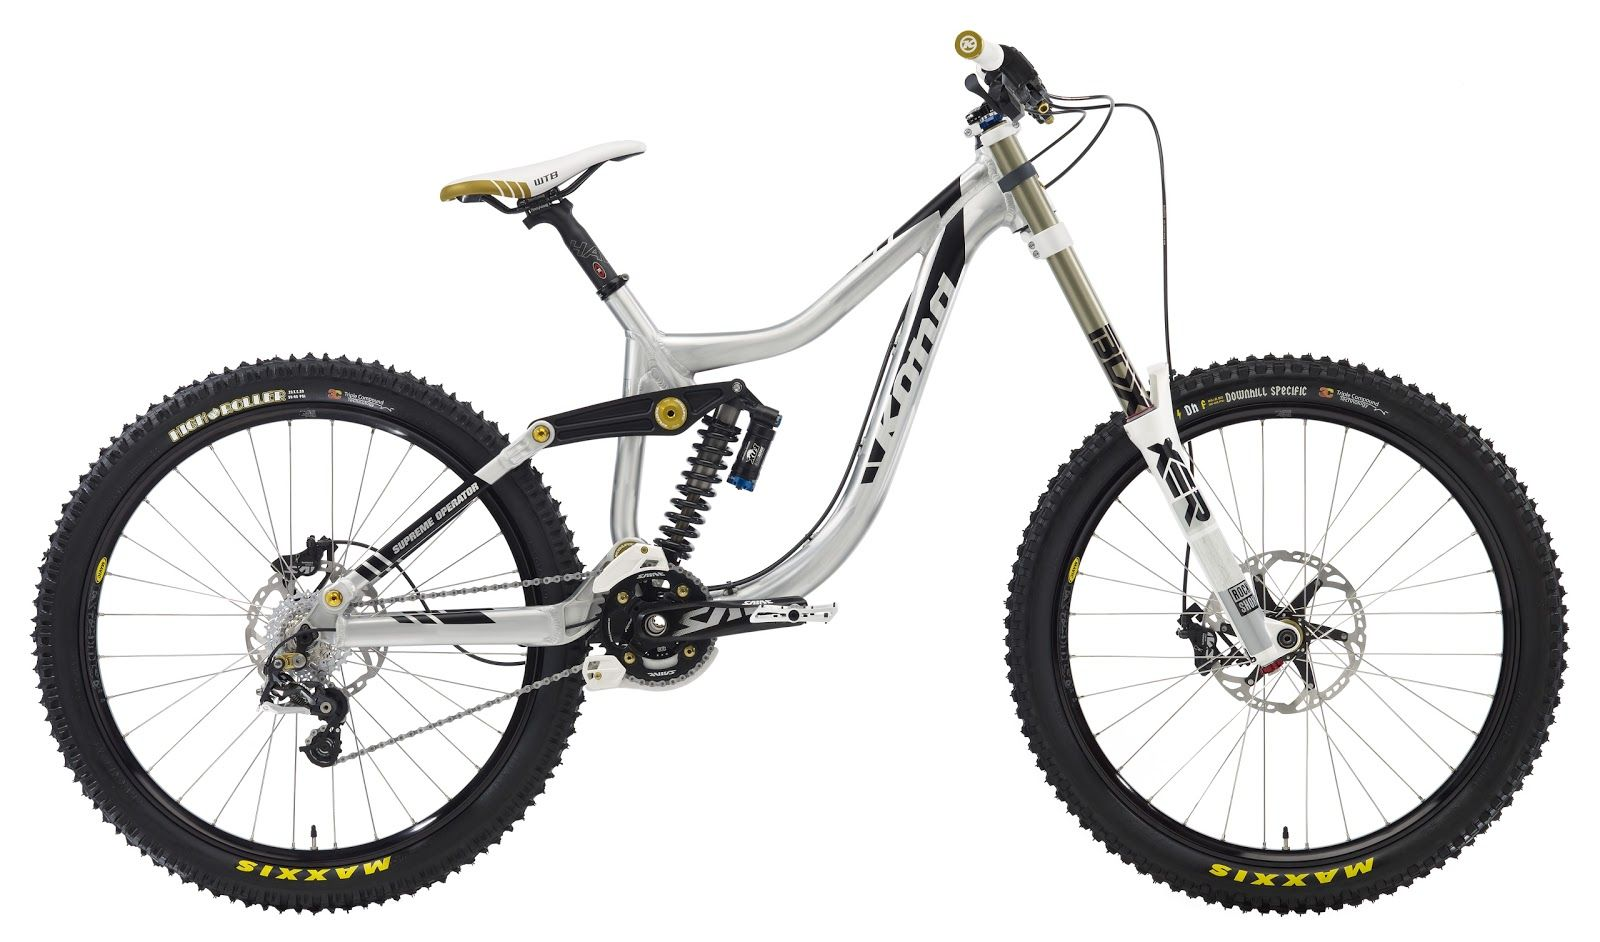 This updated bike, which is the top-of-the-line model of the 2012 ...